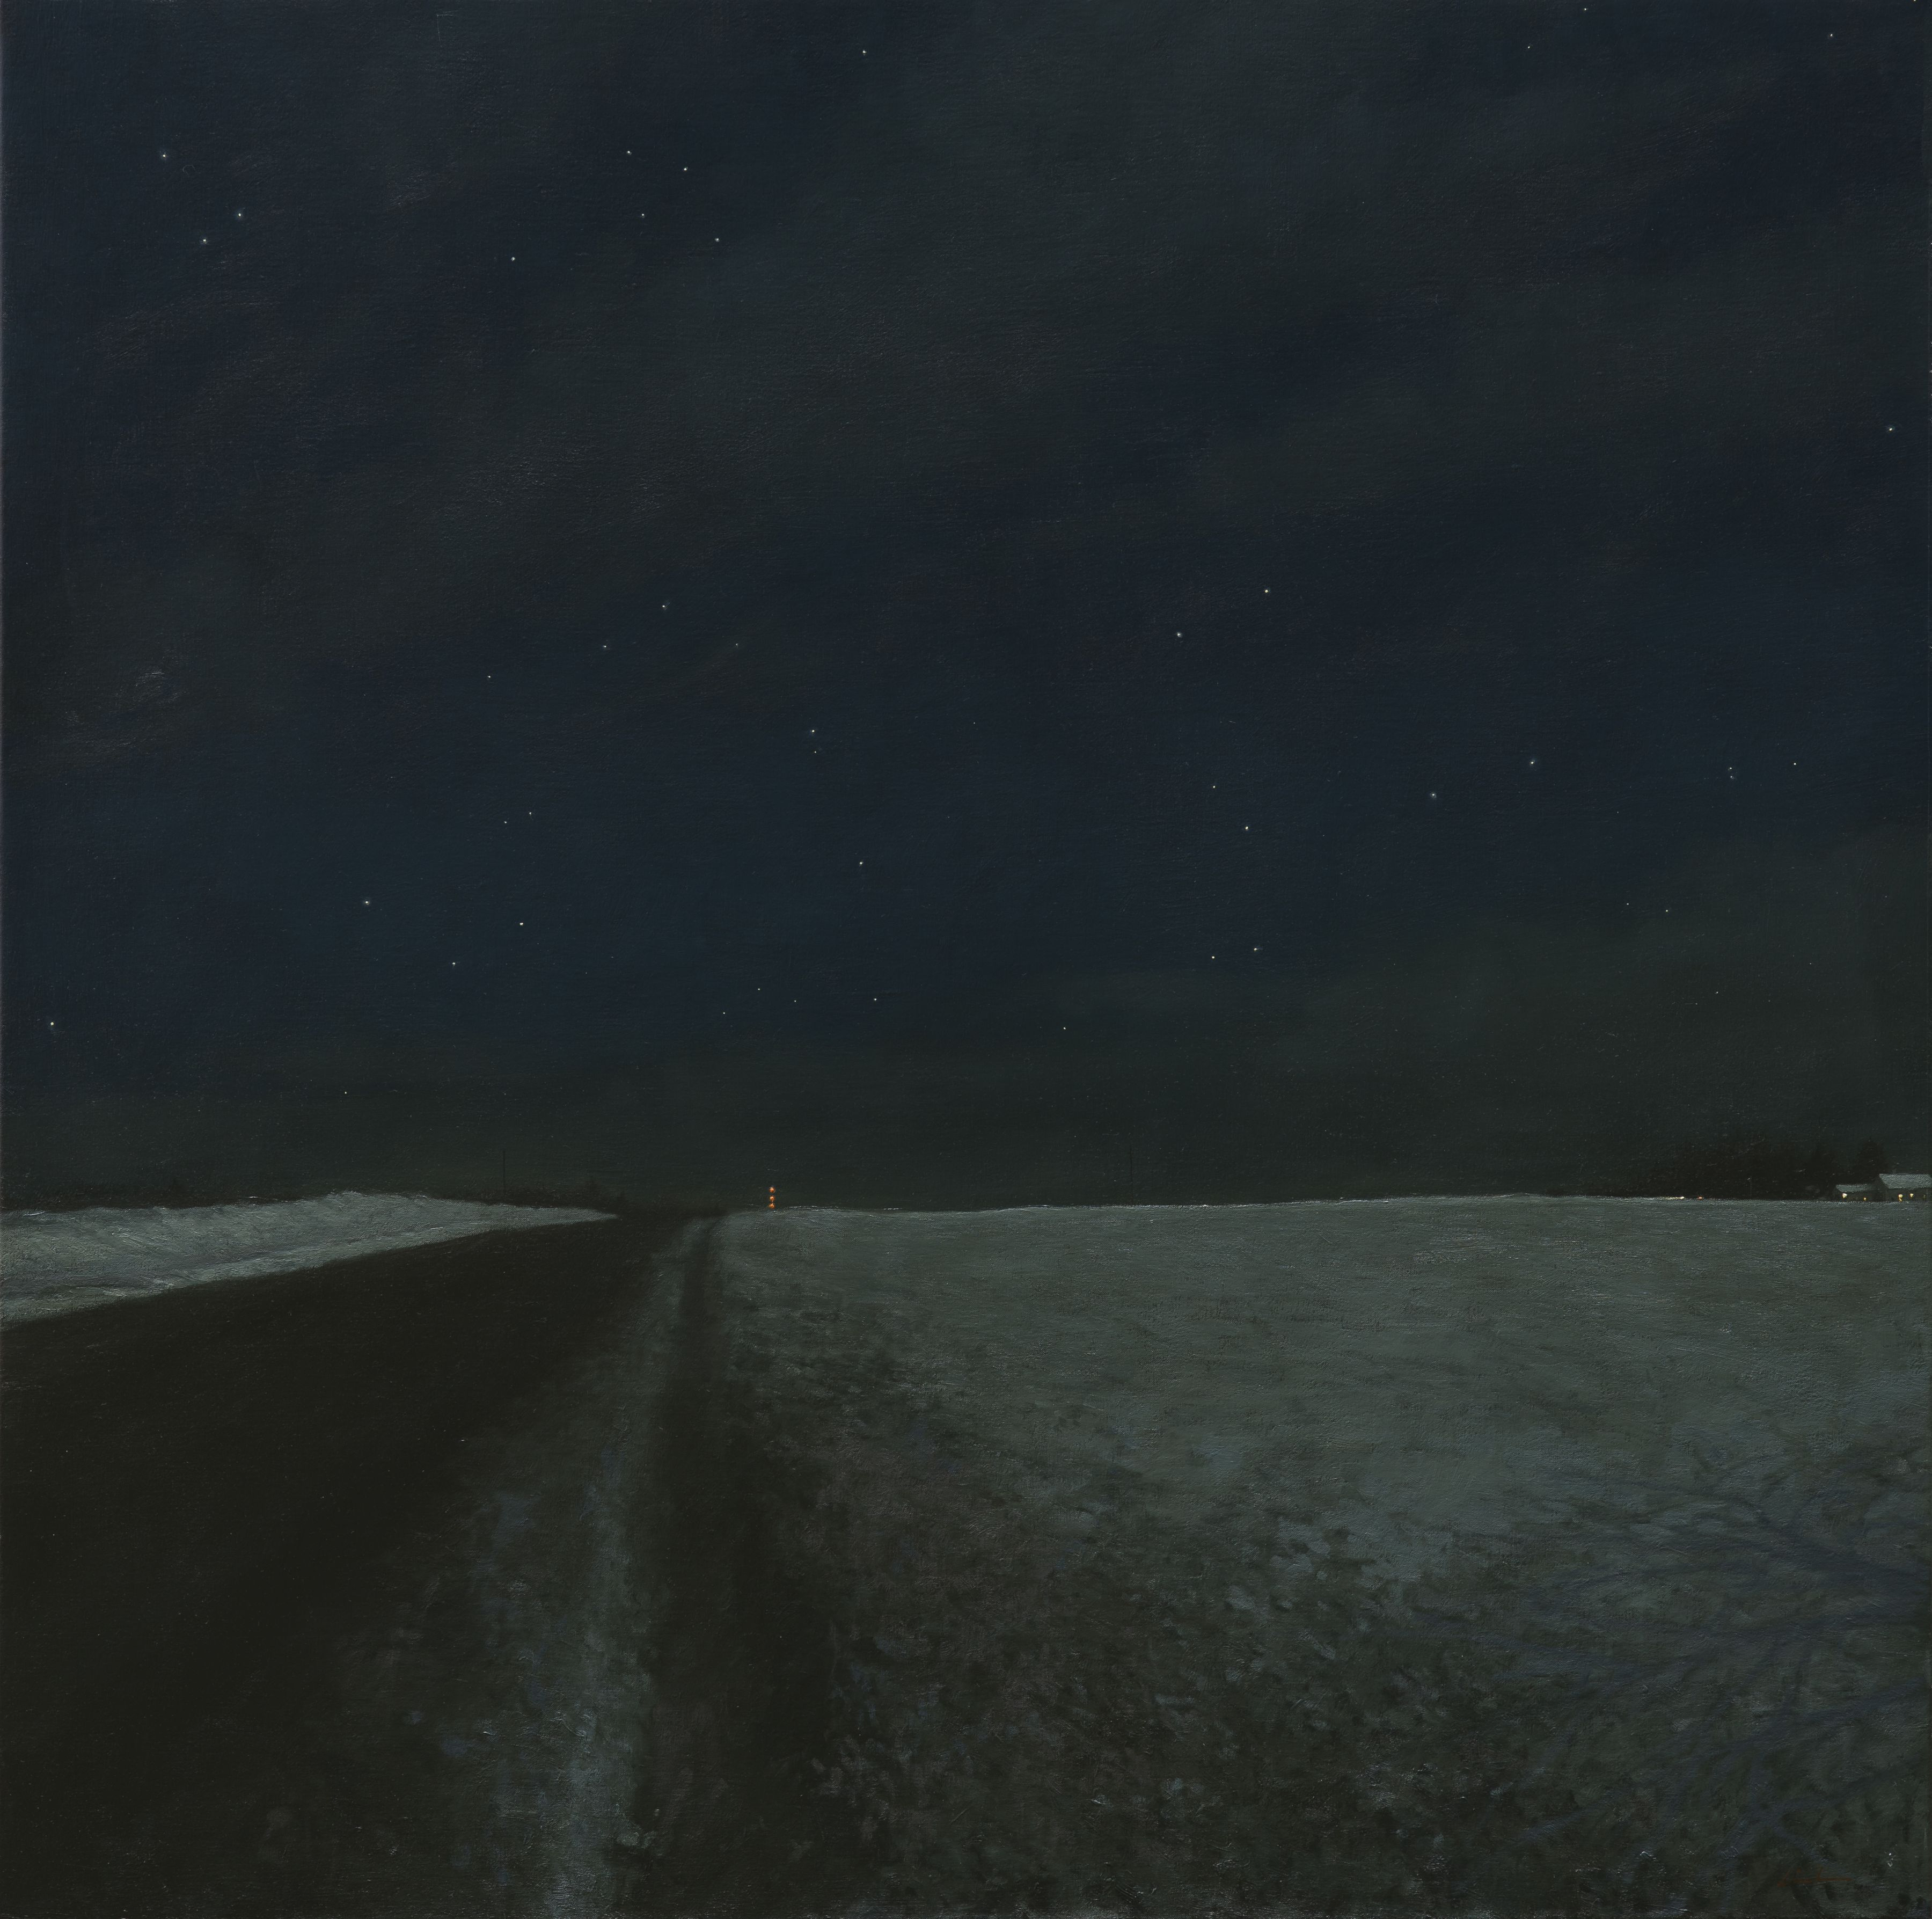 linden frederick, Hunger Moon, 2014, oil on linen, 45 1/2 x 45 1/2 inches